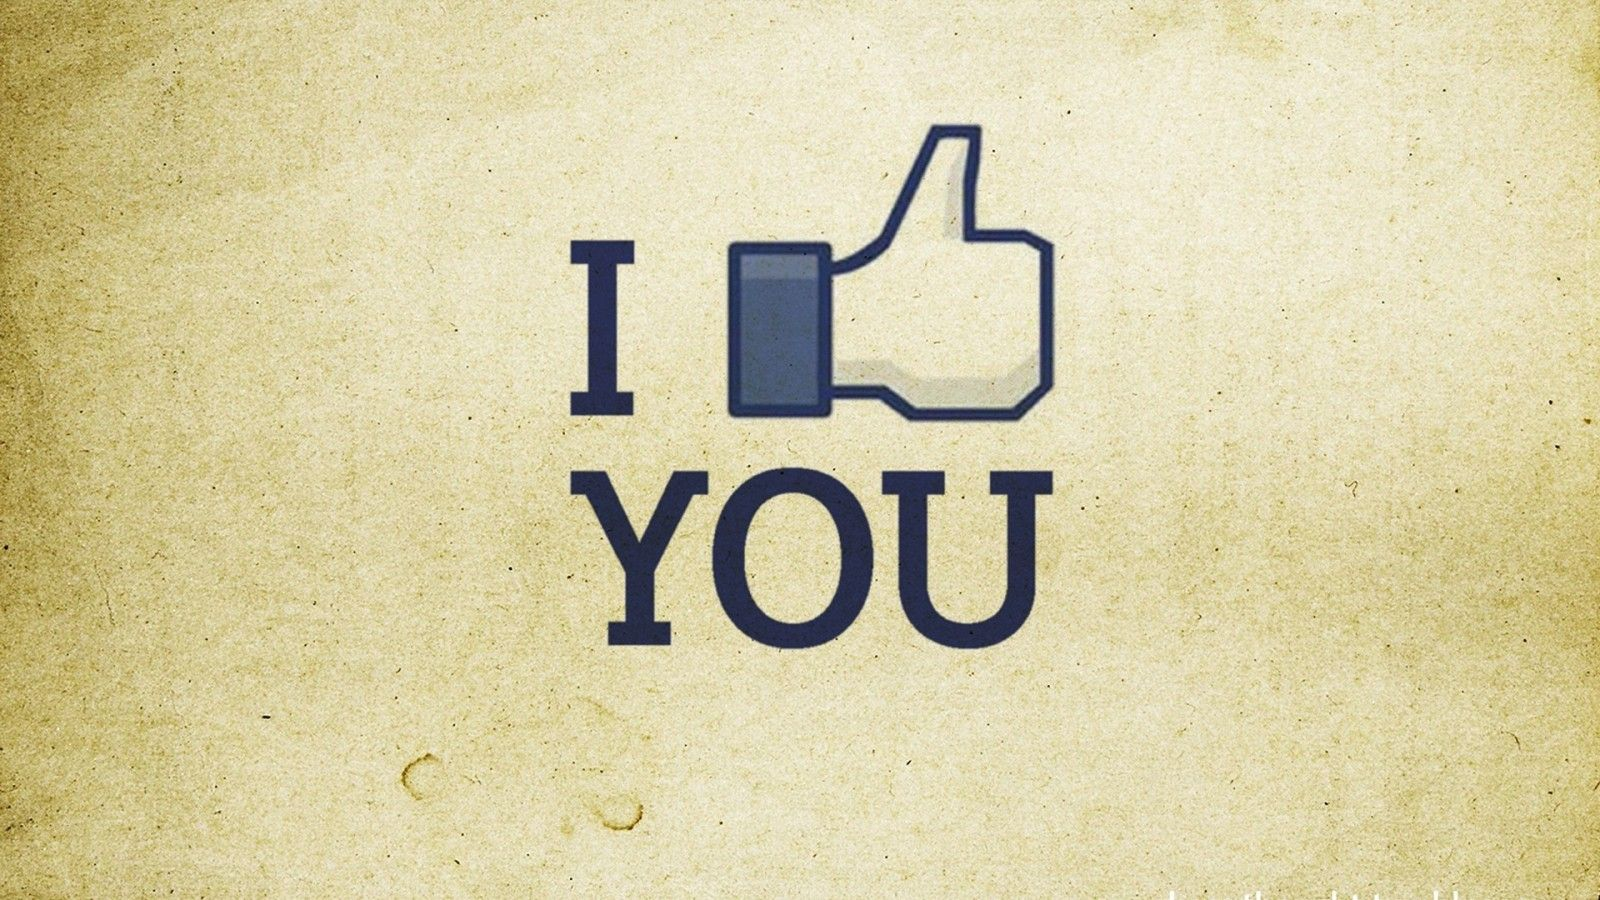 17 Best images about Facebook on Pinterest | Timeline covers ...